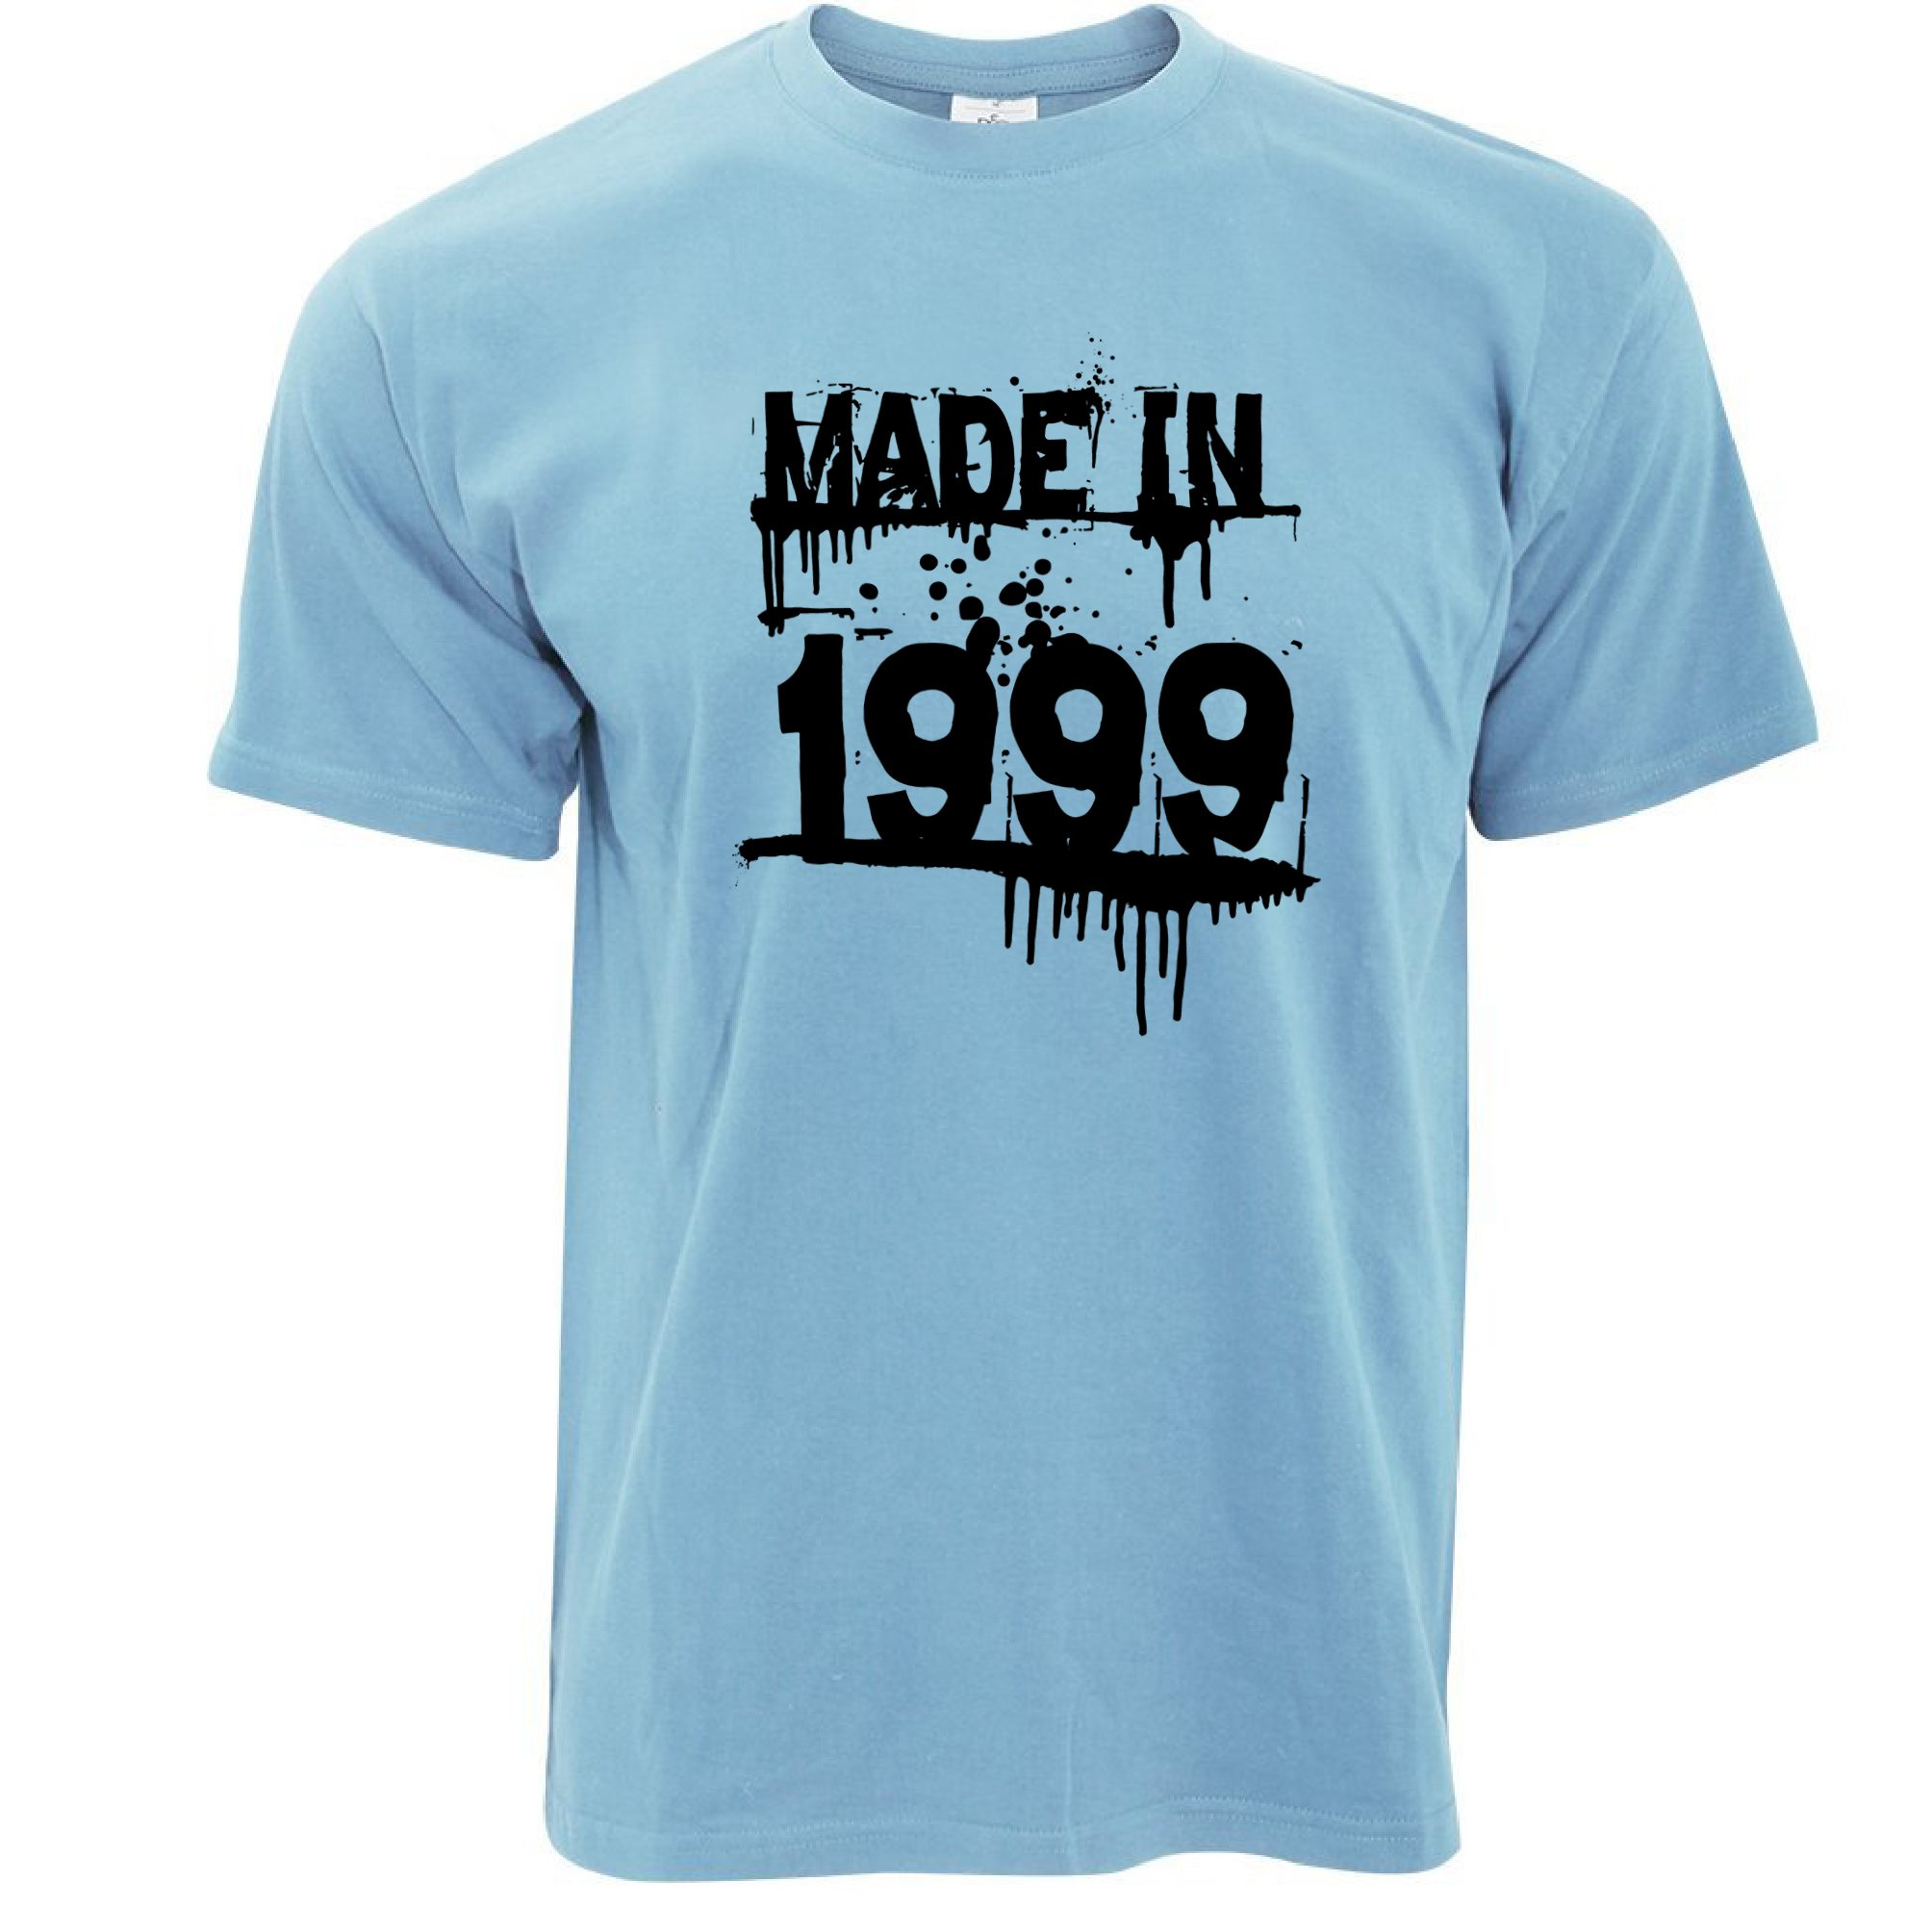 Made in 1999 dripping paint graffiti stencil year design for Made in t shirts